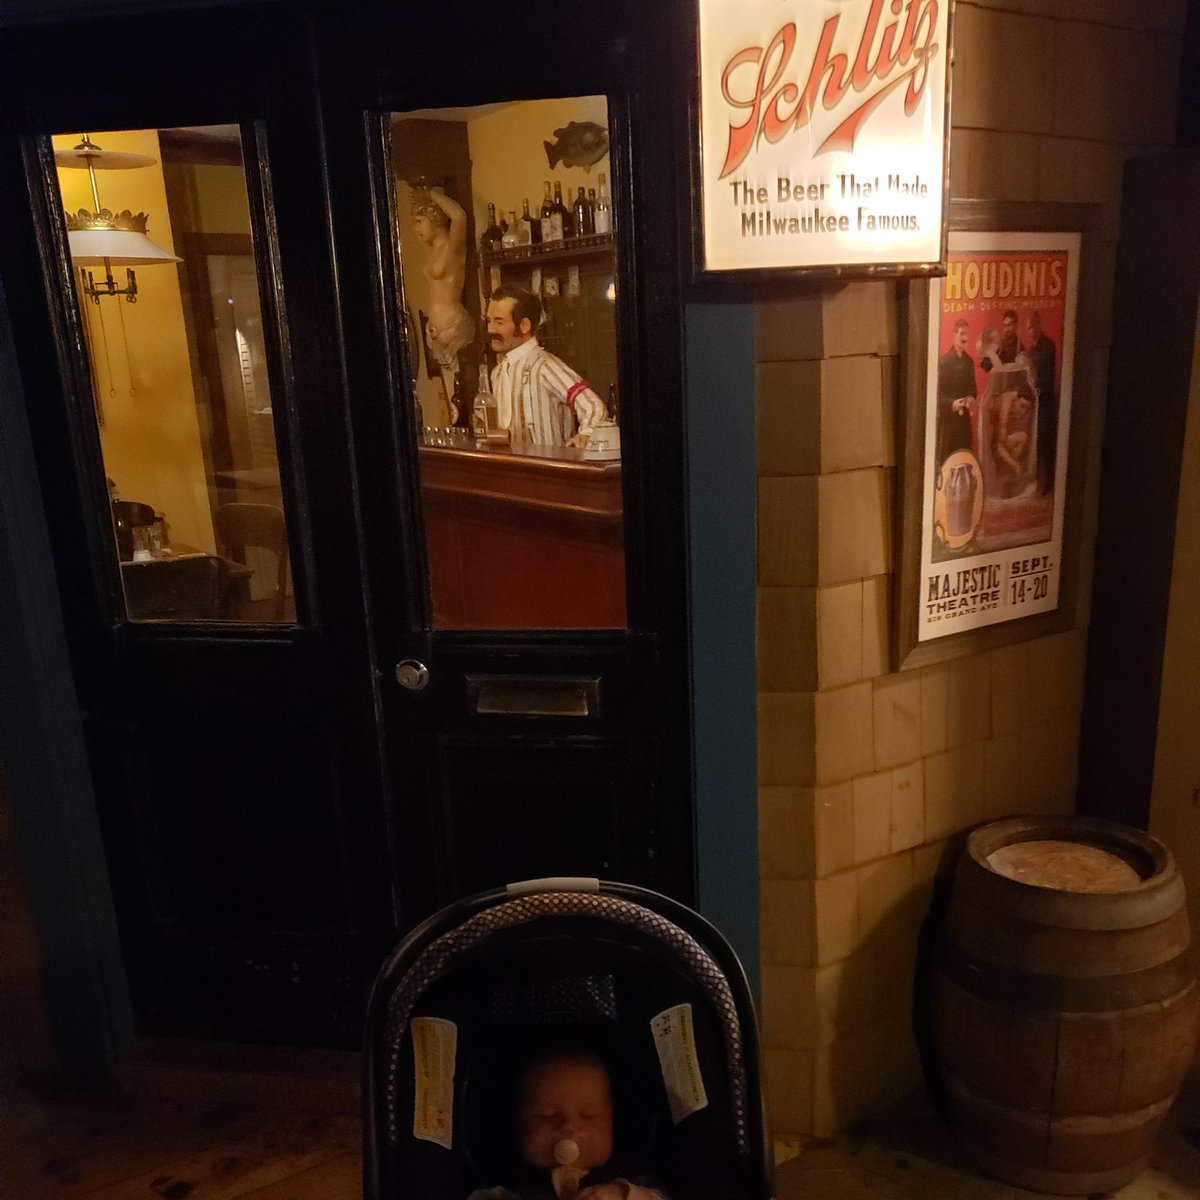 Pooper in the meets, napper in the Streets #paternityleave #milwaukeepublicmuseum pic.twitter.com/L7TRdCrffn